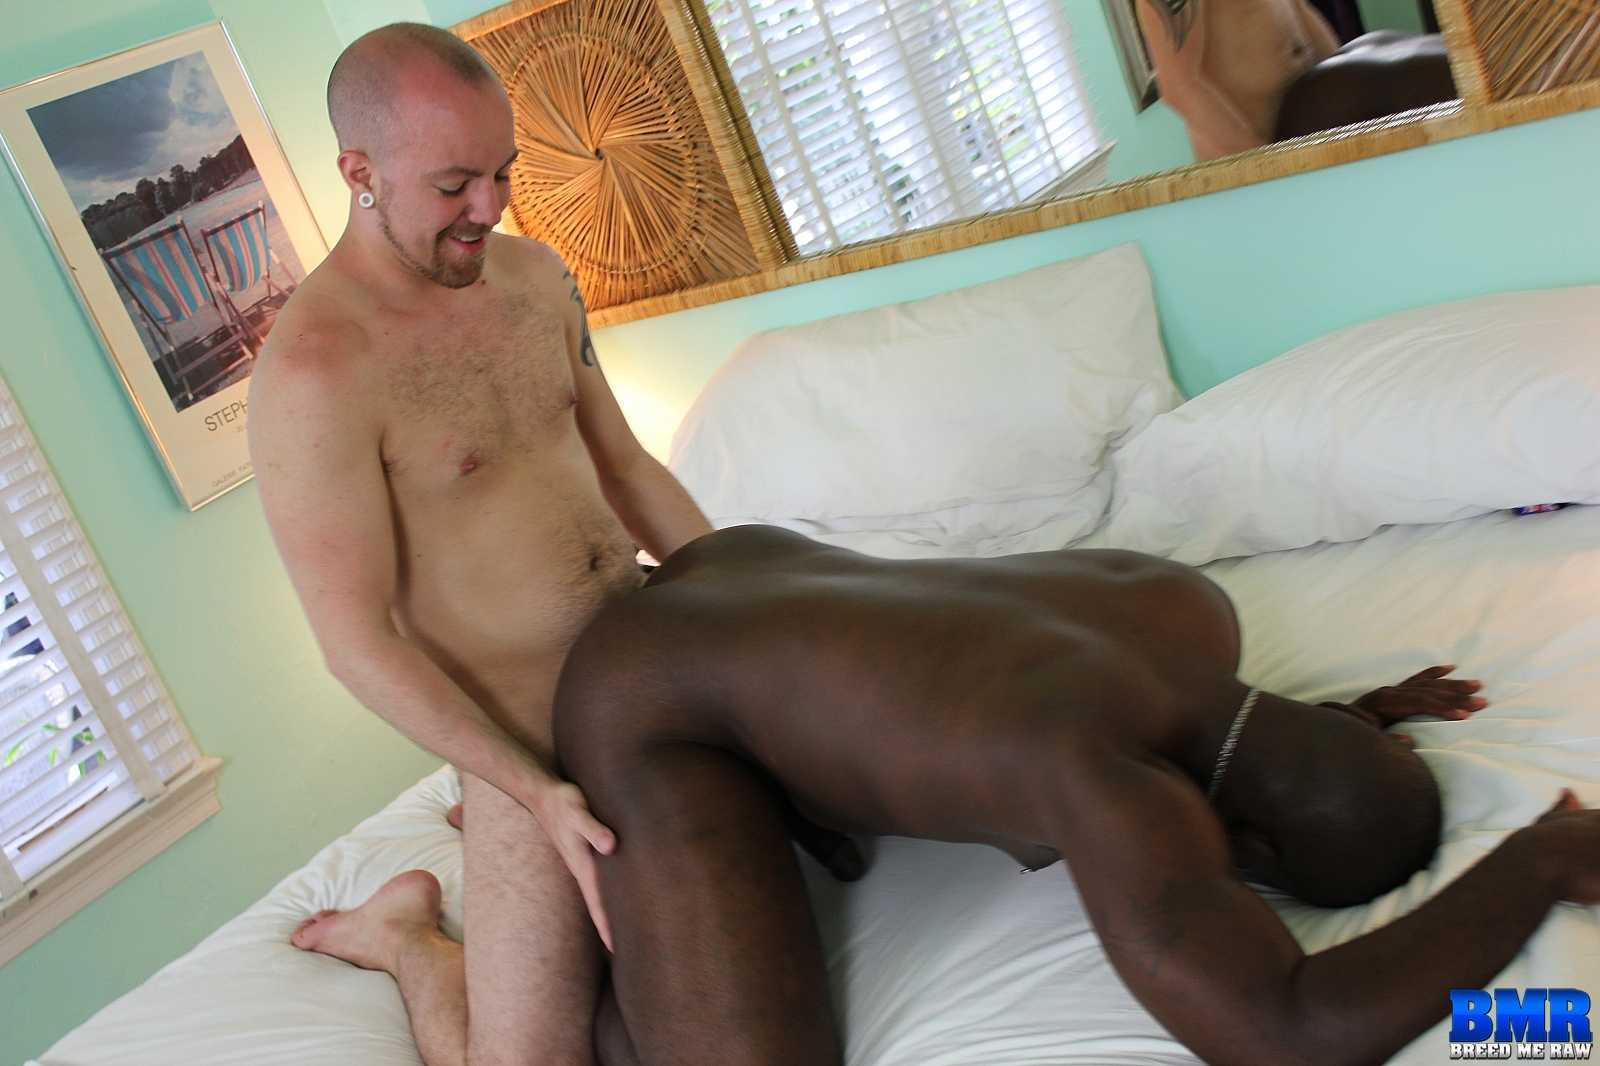 Breed-Me-Raw-Daemon-Sadi-and-Lex-Antoine-Interracial-Bareback-Fucking-Big-Black-Cock-Amateur-Gay-Porn-13 Amateur Interracial Bareback Flip Flop Fucking With Huge Uncut Cocks